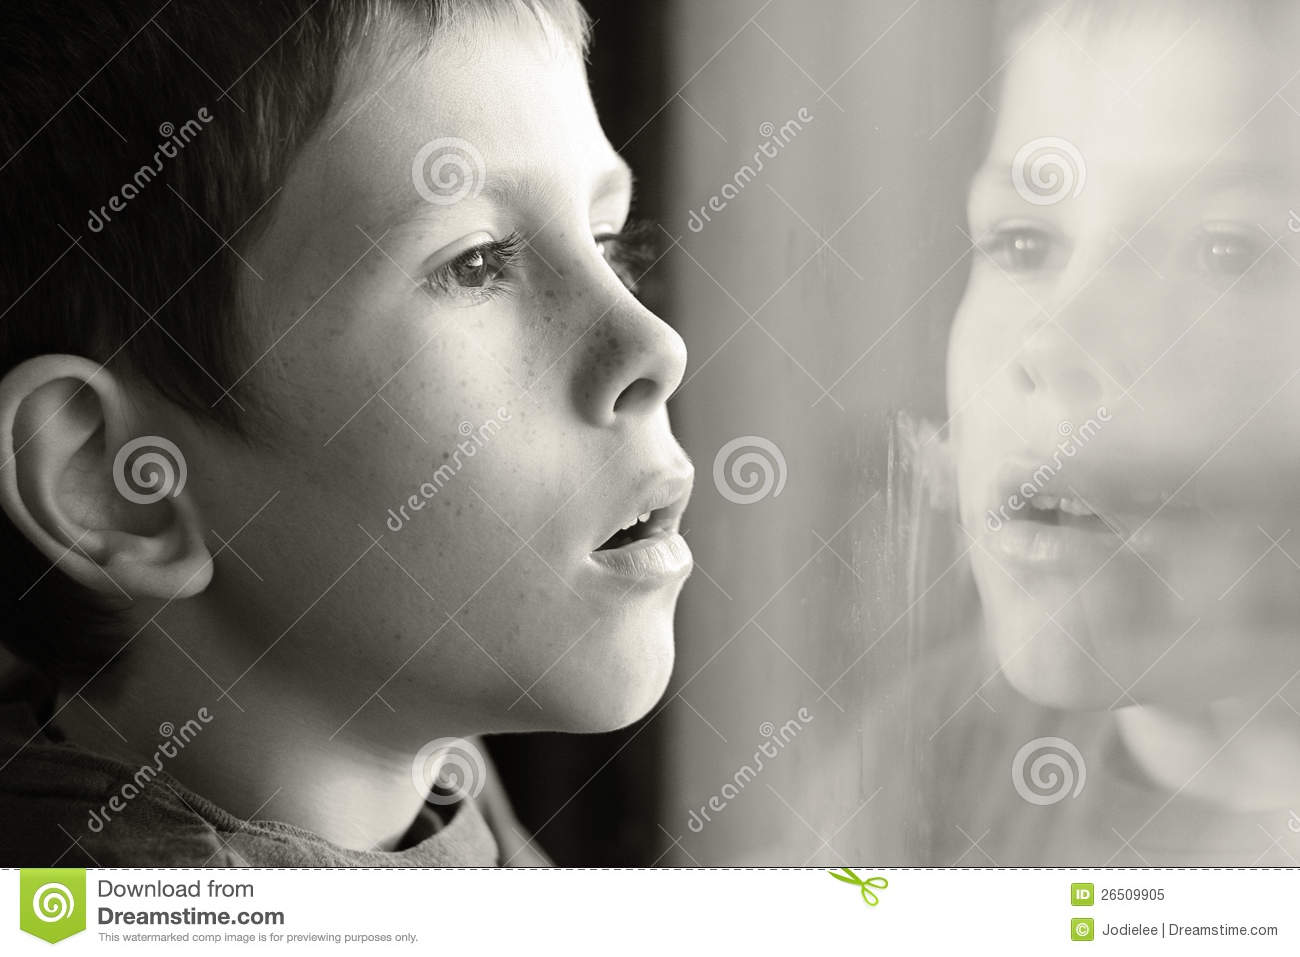 Young boy in thought with window reflection